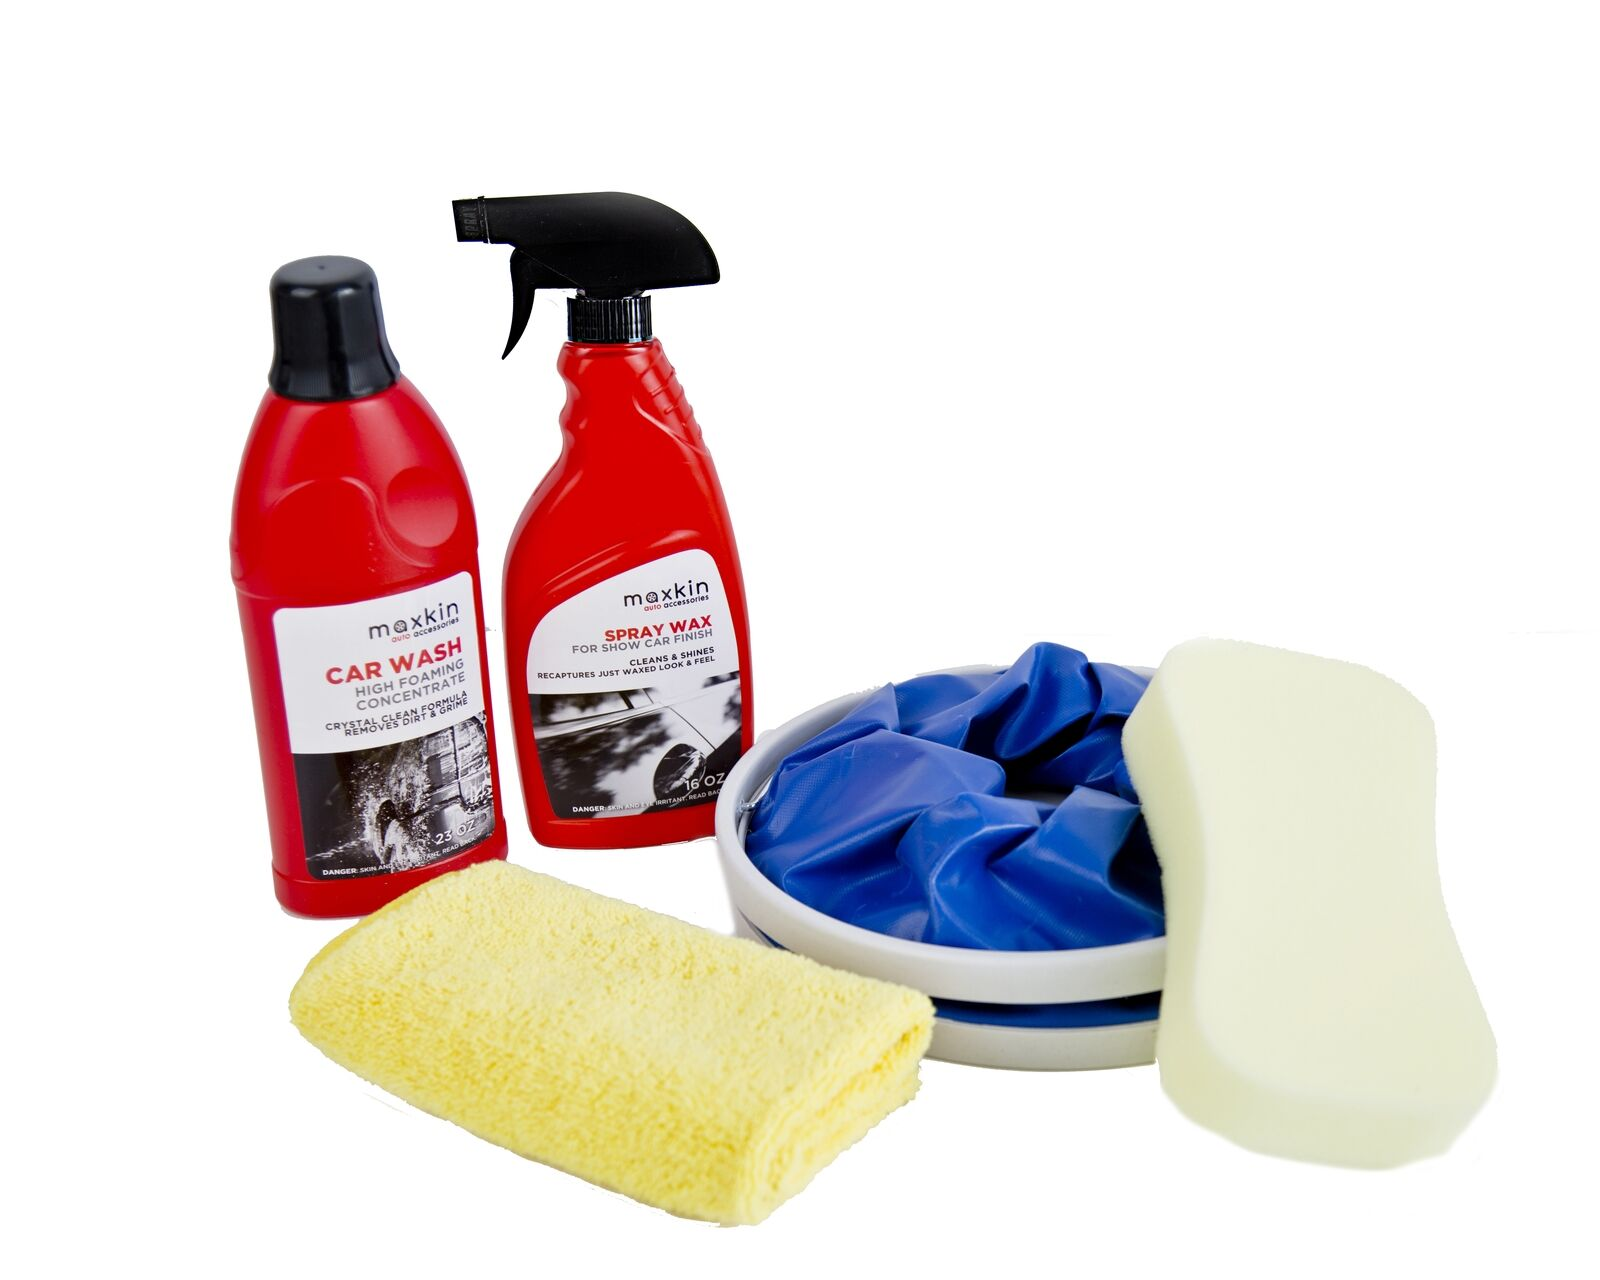 Maxkin Deluxe Car Wash Kit Maxa EBay - Show car cleaning products